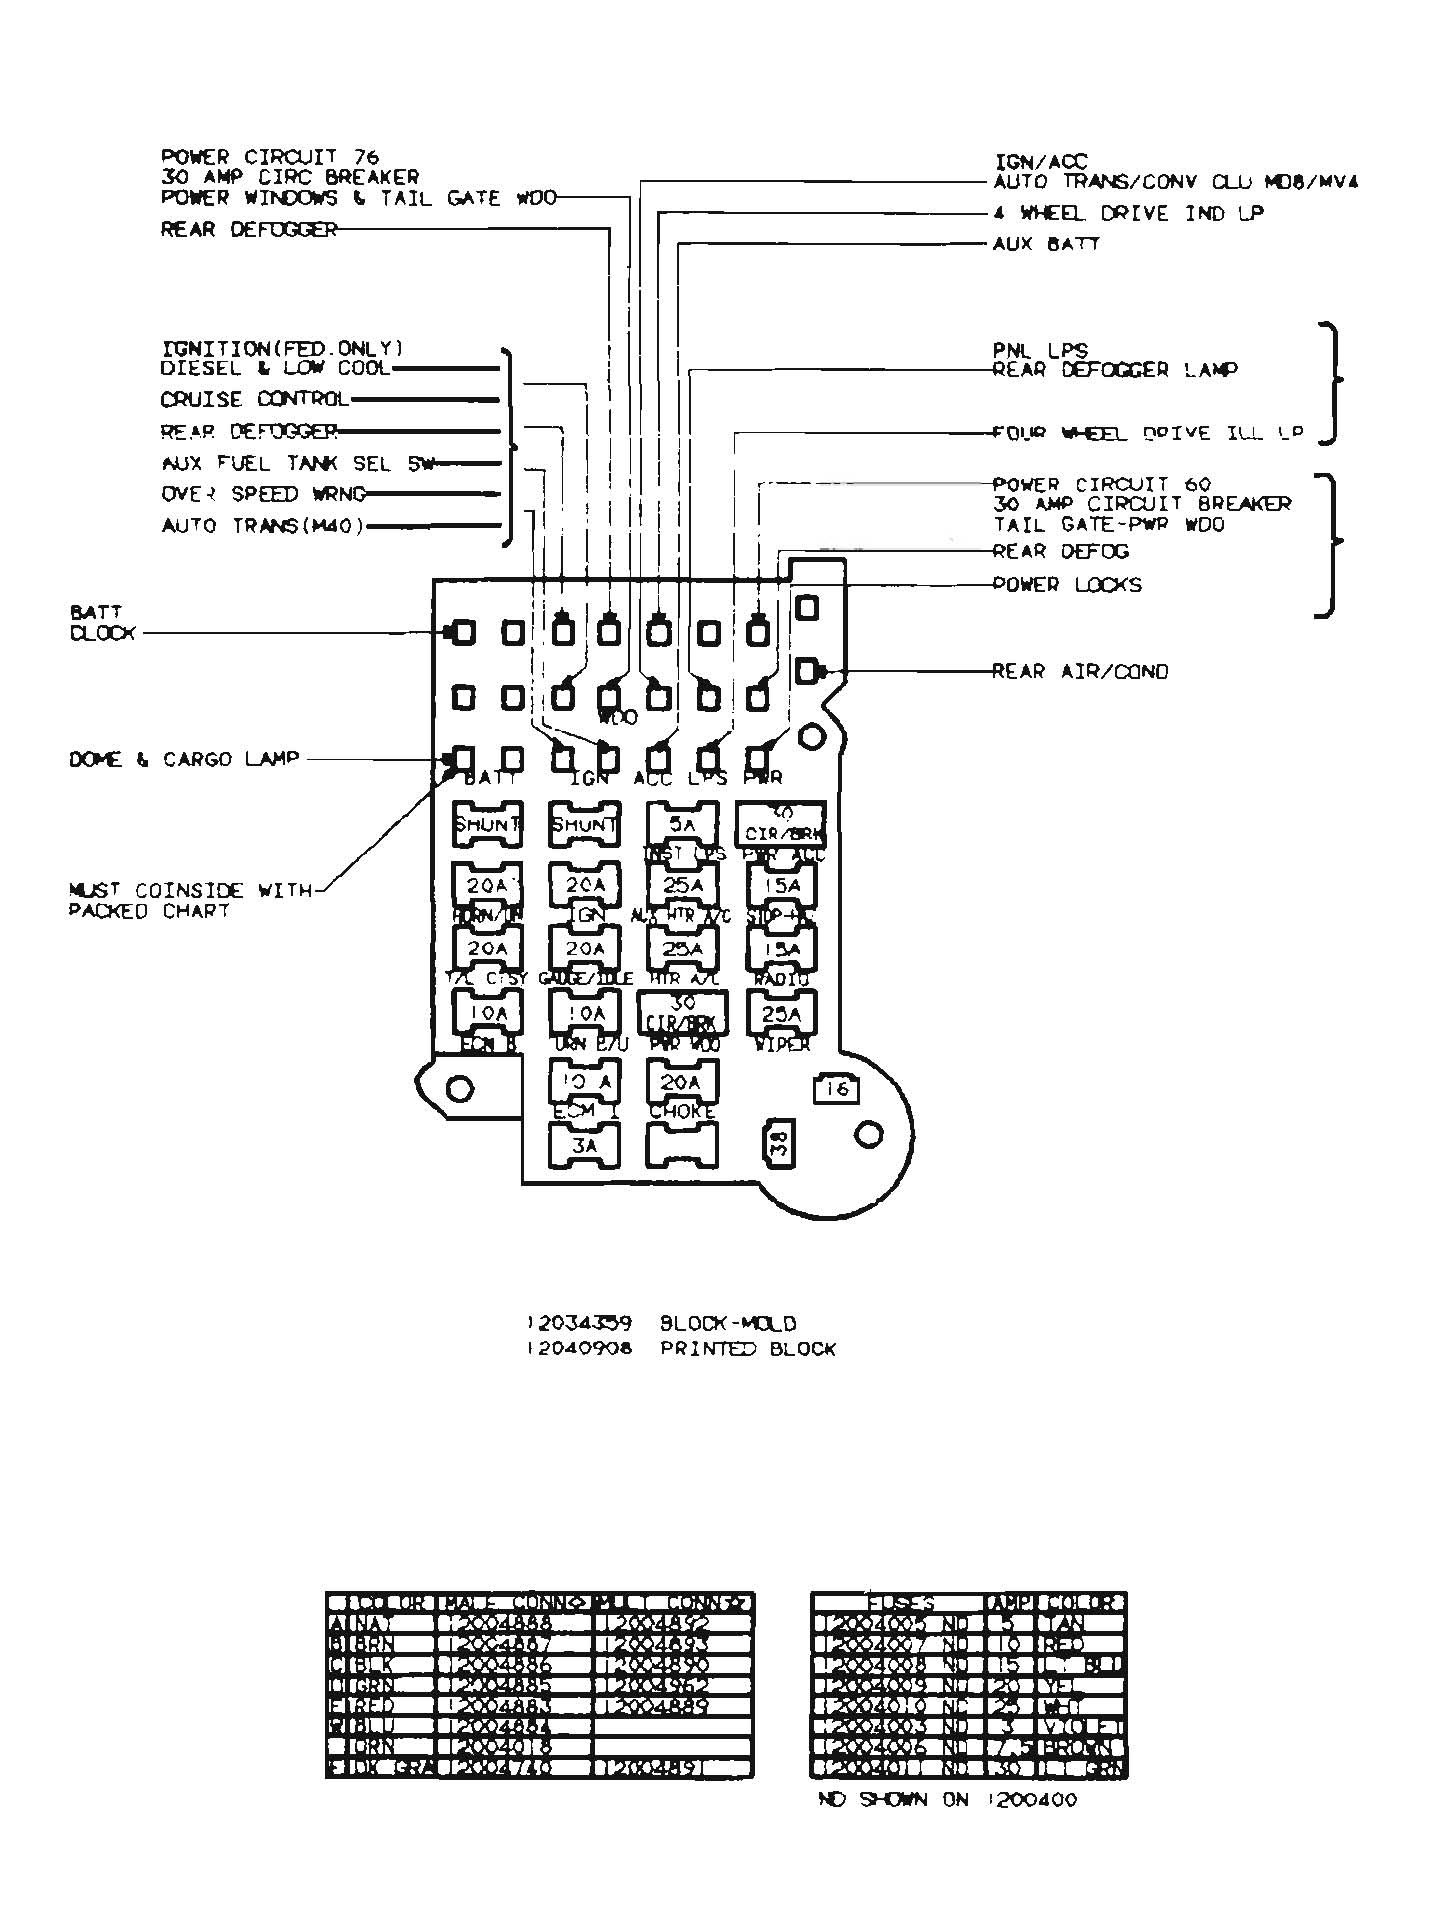 hight resolution of 1989 gmc truck fuse diagrams wiring diagram blogs 2004 ford e250 fuse box diagram 1989 gmc sierra fuse box diagram